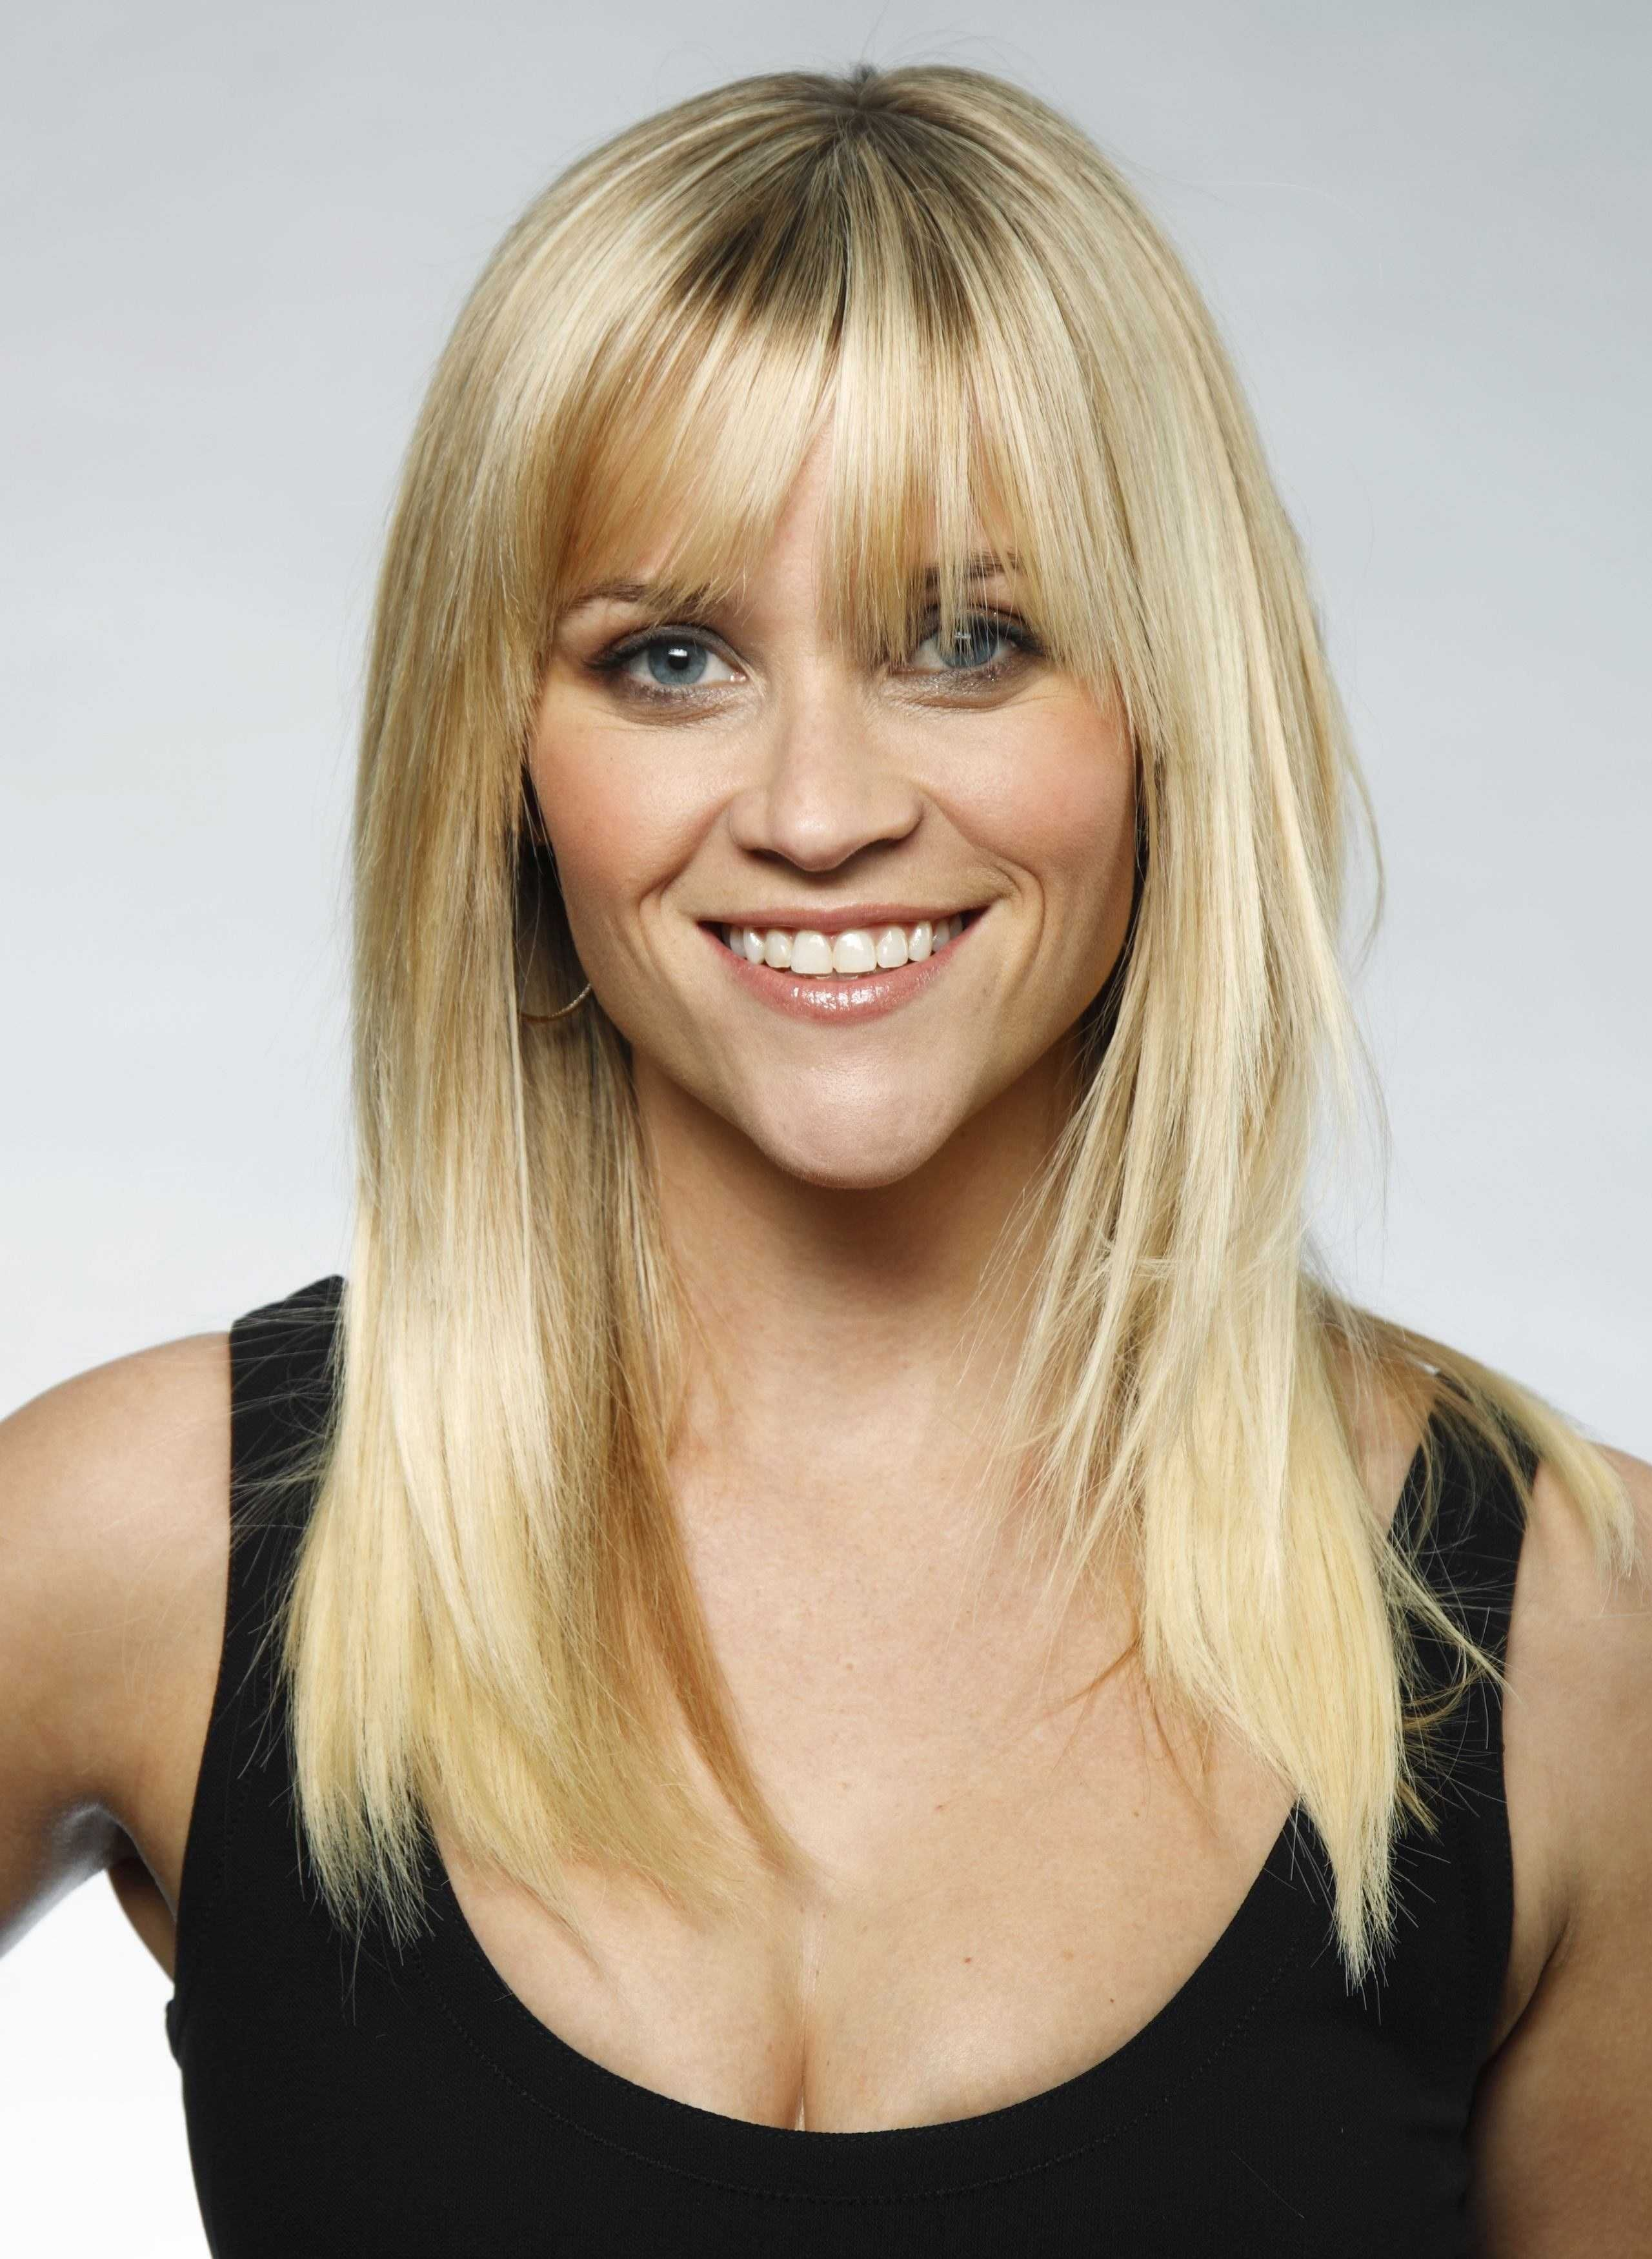 Reese Witherspoon - one of Hollywood's most cheerful and down-to-earth stars.